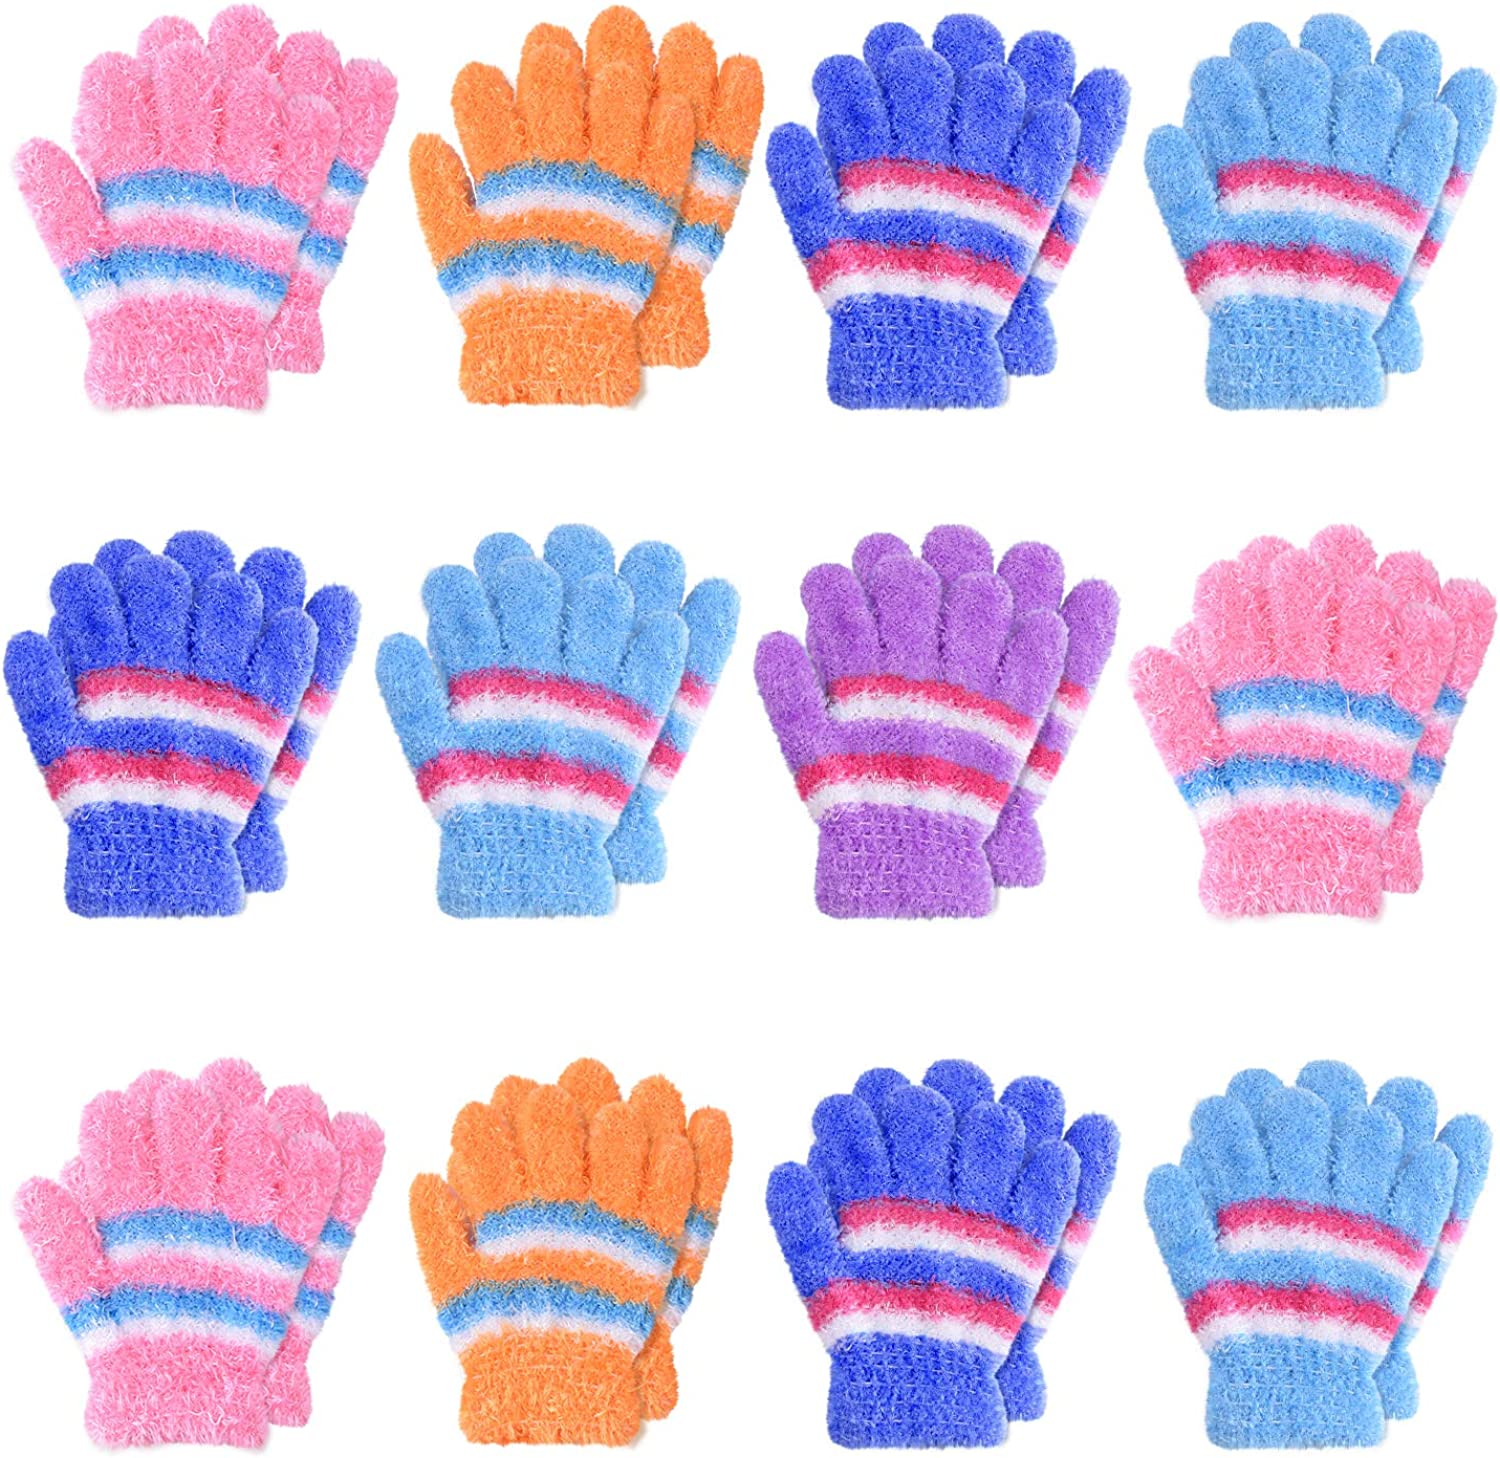 TUPARKA 12 Pairs Toddler Magic Stretch Mittens Little Girls Soft Knit Mitten Baby Boys Winter Knitted Gloves